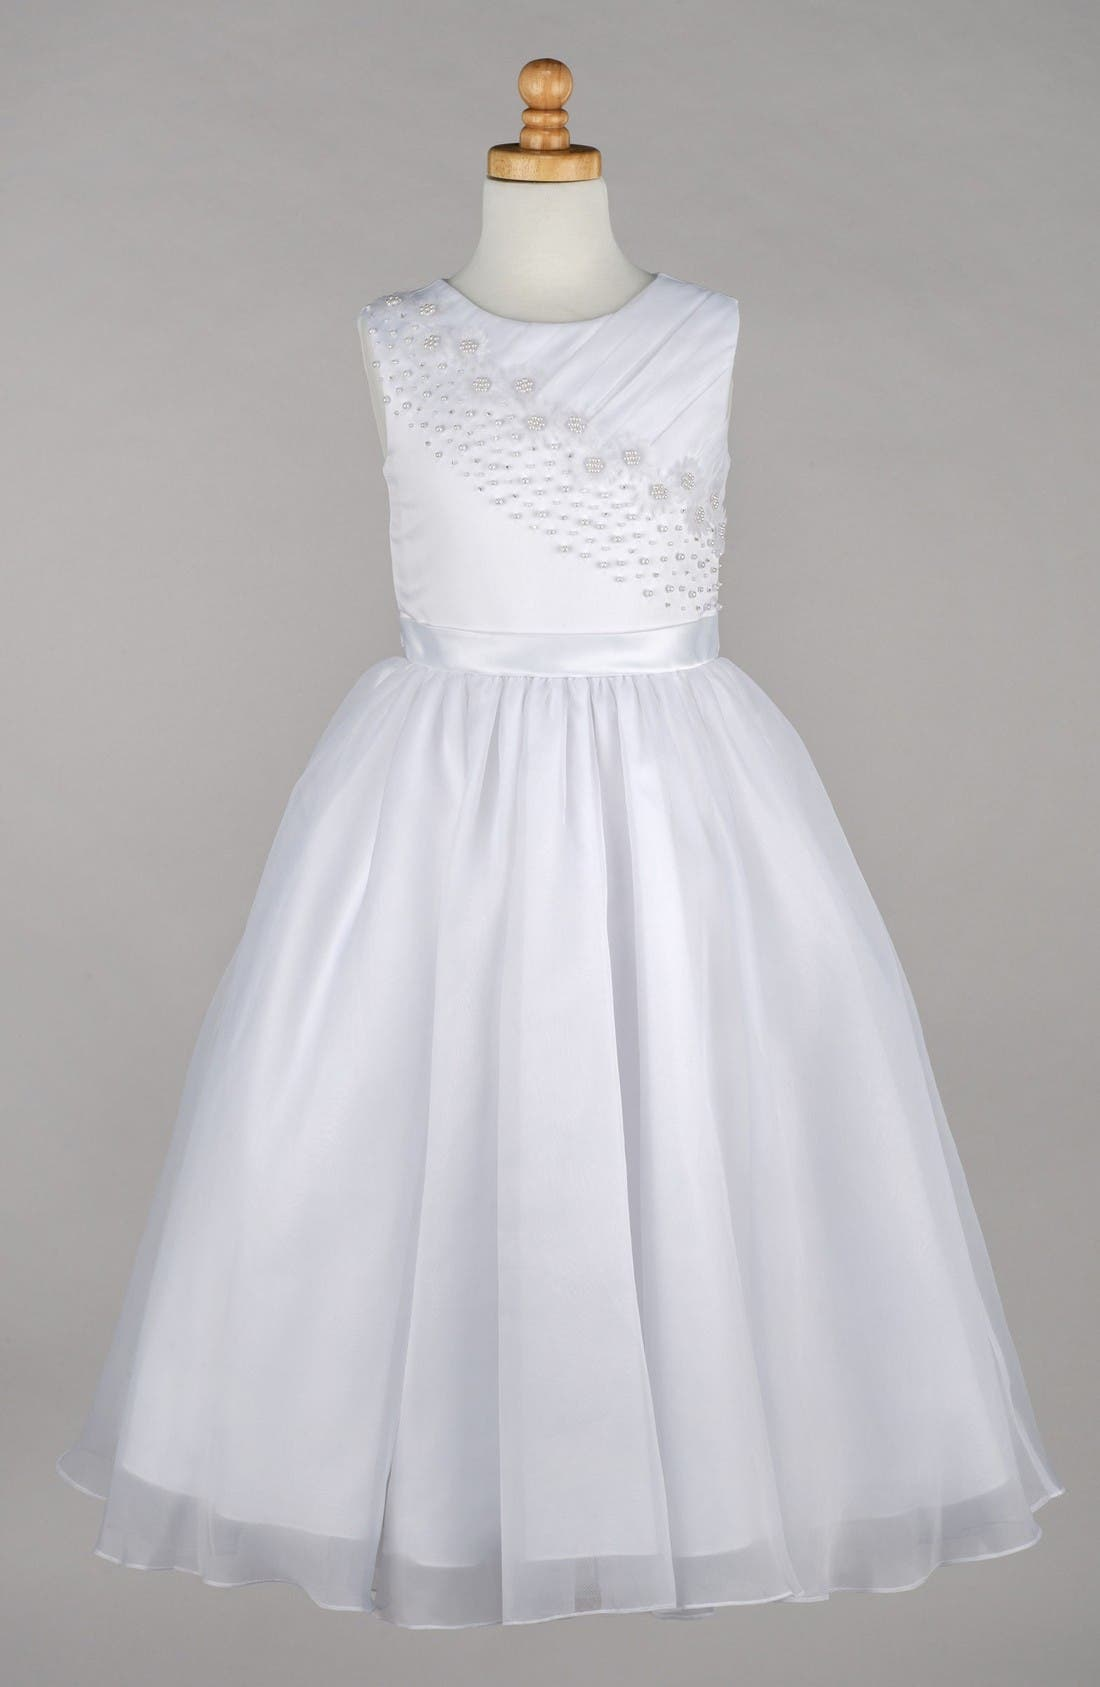 LAUREN MARIE Beaded Daisy Bodice First Communion Dress